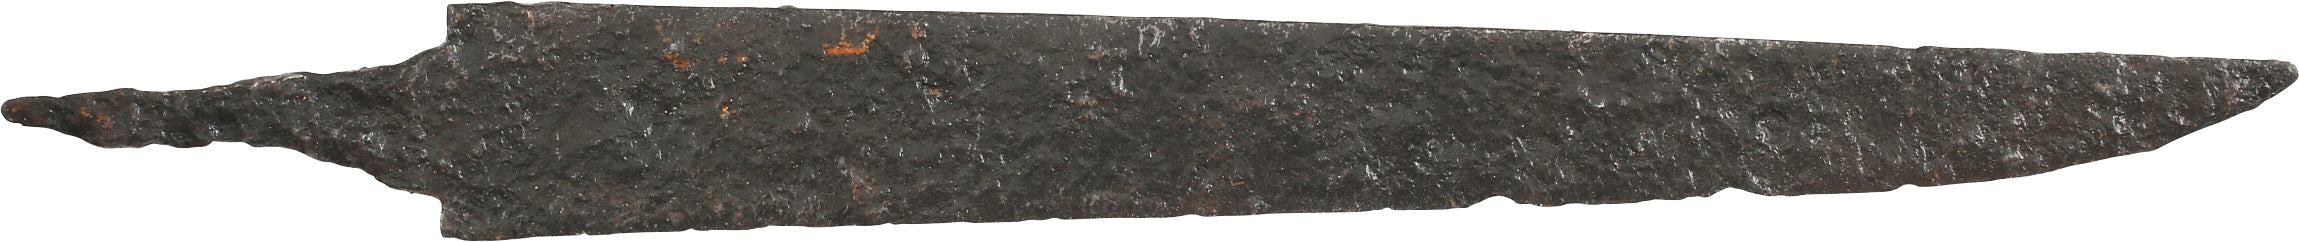 FINE AND RARE ROMAN SIDE KNIFE, 2ND-4TH CENTURY AD